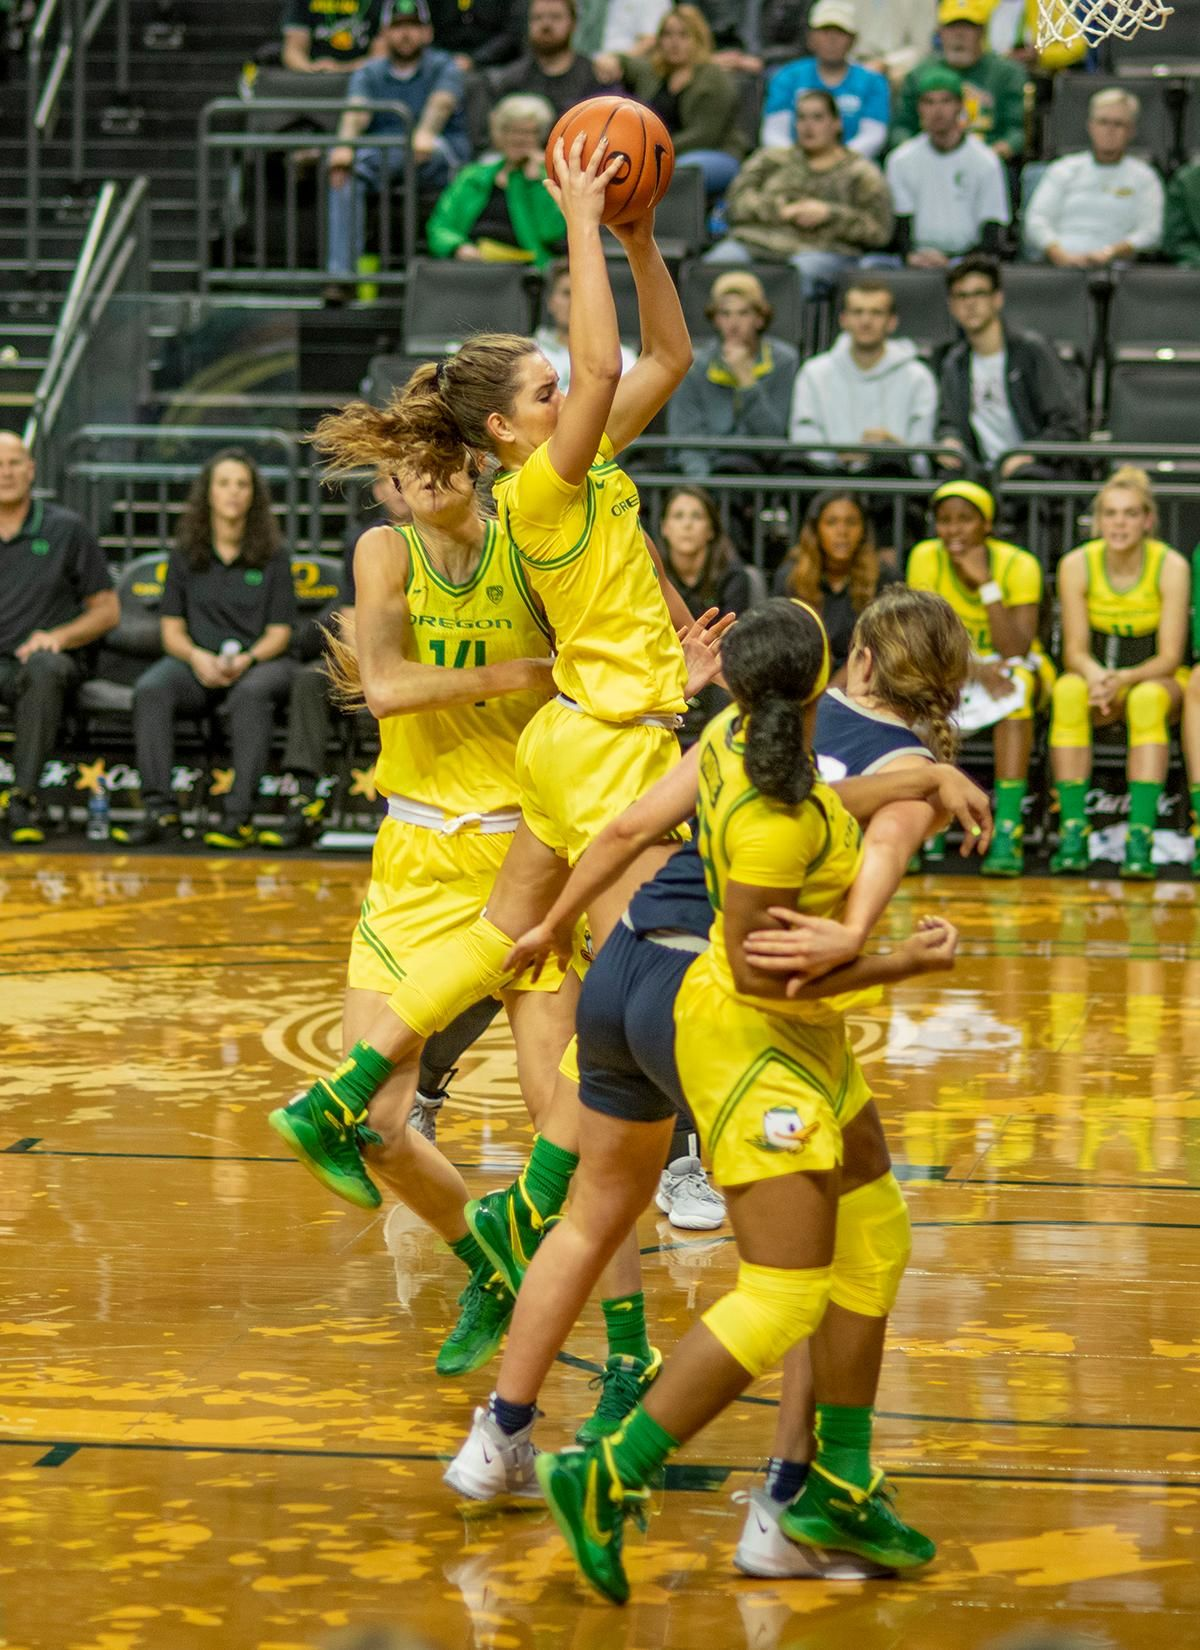 Oregon Ducks Taylor Chavez, #3, pulls down a rebound. The University of Oregon Ducks women's basketball team defeated the Utah St. Aggies 109 – 52 in Matt Knight Arena Wednesday evening. Taylor Chavez led the Ducks with 25 points including six three-pointers. Jaz Shelley added 15 for the Ducks. Ruthy Hebard needed six rebounds to have an accumulated career 1000 rebounds; she pulled down 15 and scored 19 points for a double-double. Sabrina Ionescu needed four points to have an accumulated career 2000 points; she scored 16 points and had 12 assists for a double-double. Photo by Dan Morrison